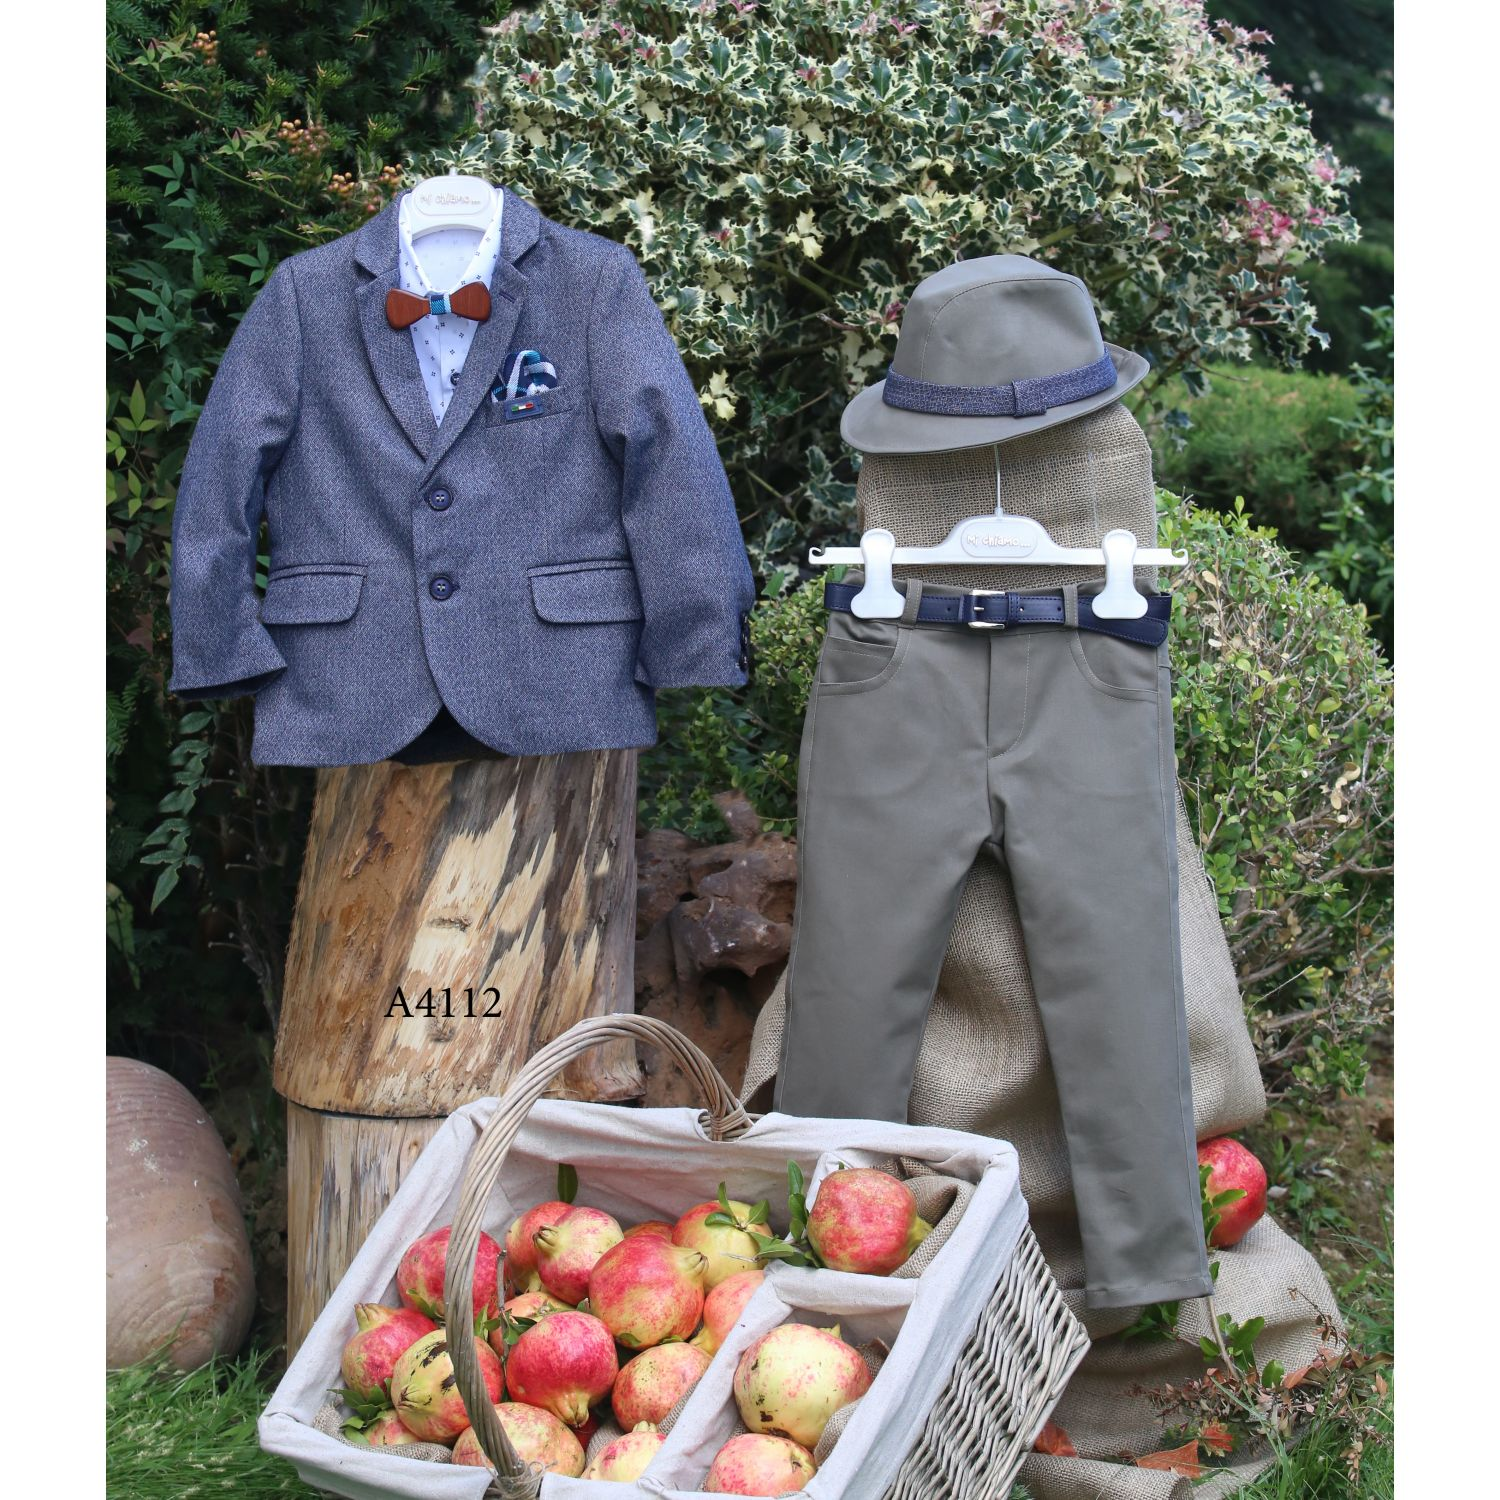 Baptismal suit for winter christening A4112